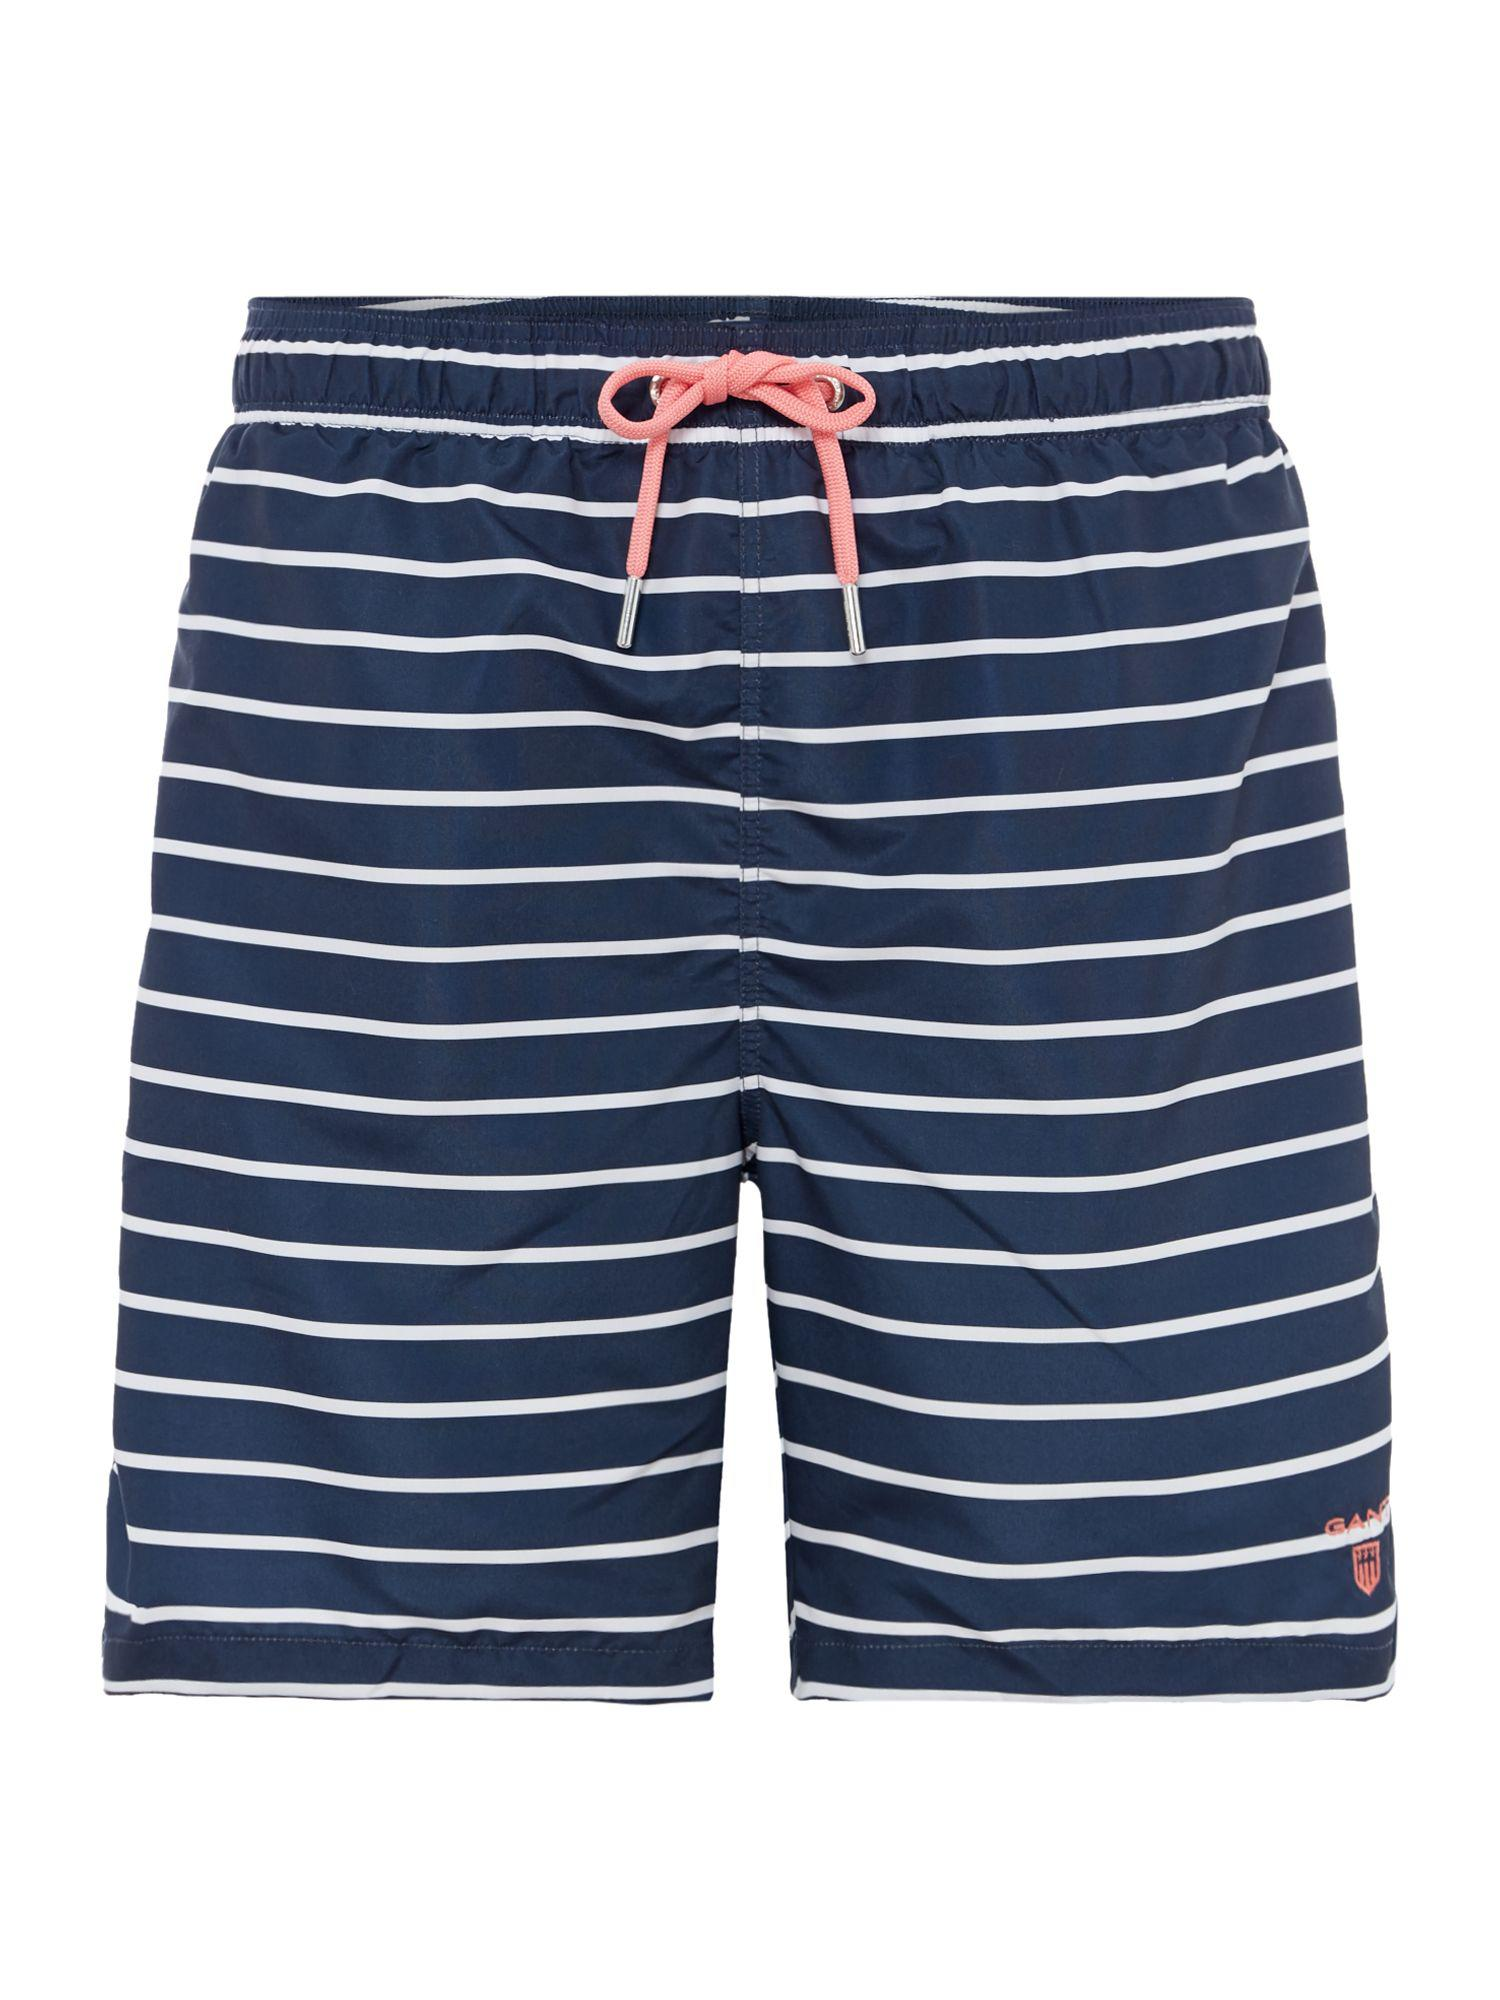 Breton Stripe Swim Shorts - Aster Blue GANT Authentic Cheap Online Cheap Sale From China Outlet Recommend aneEW